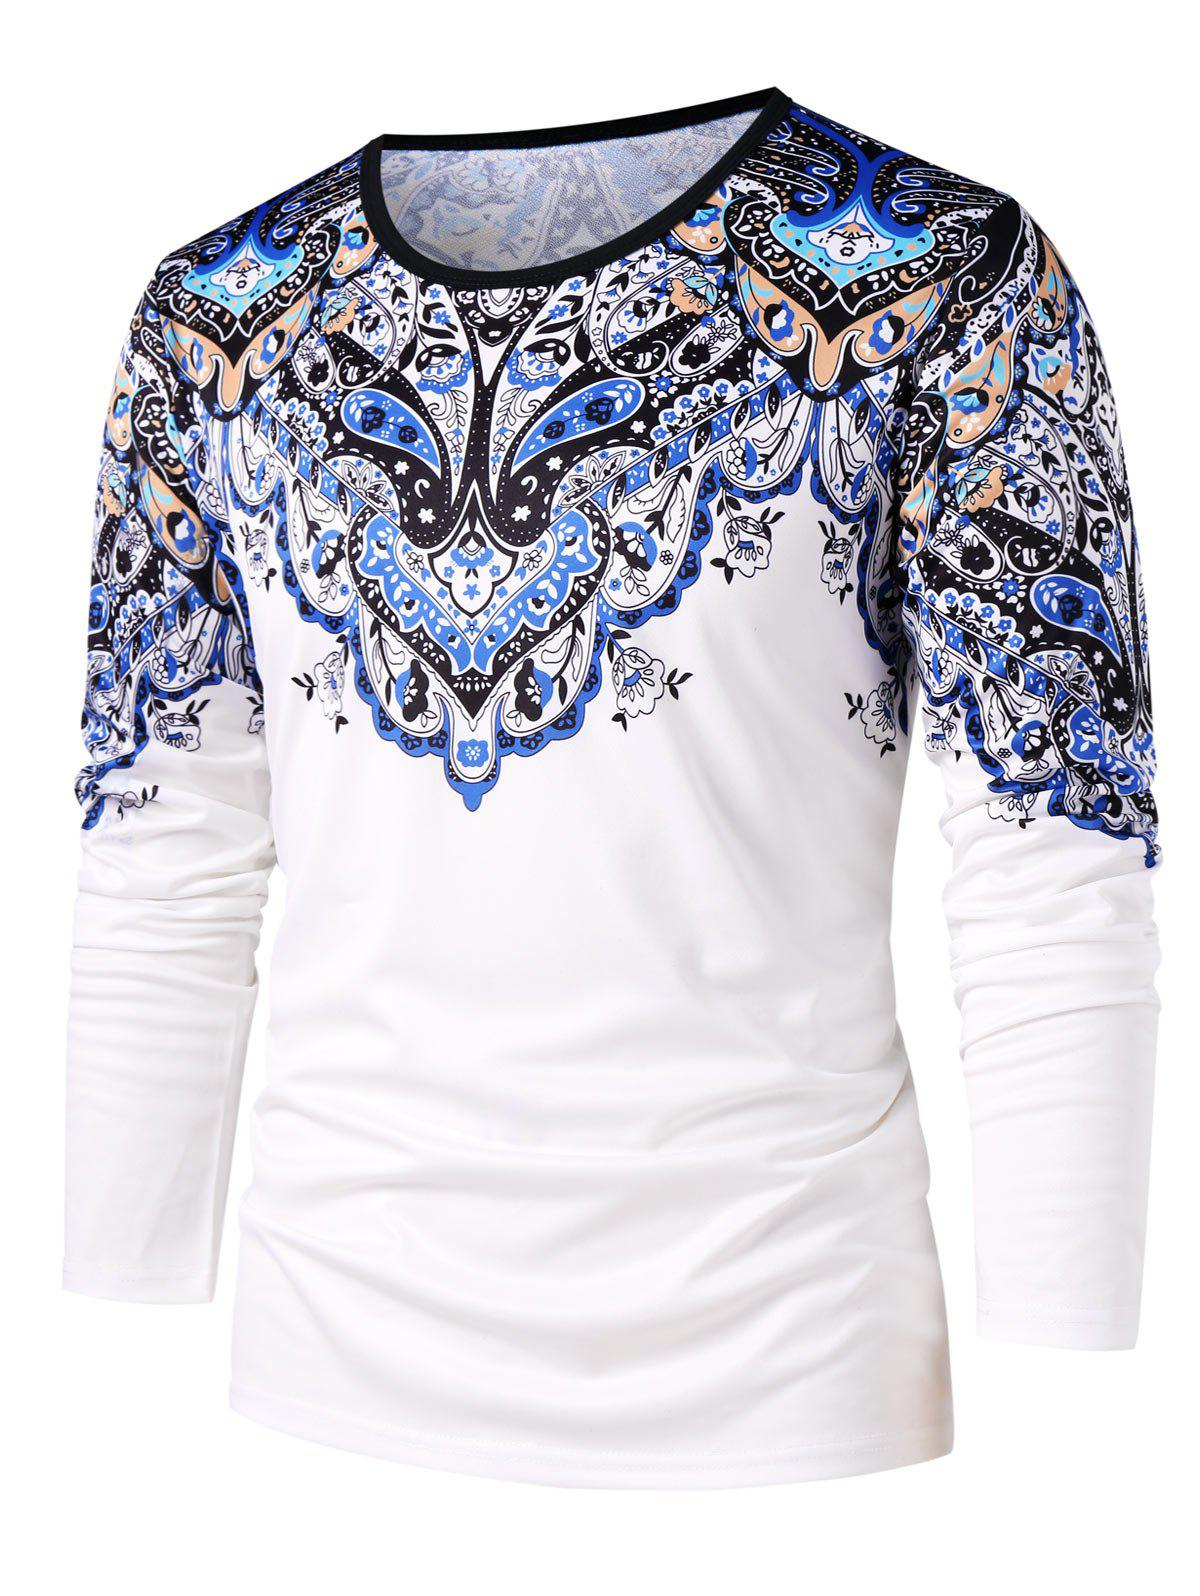 Chic Ethnic Flower Paisley Print Round Neck T-shirt